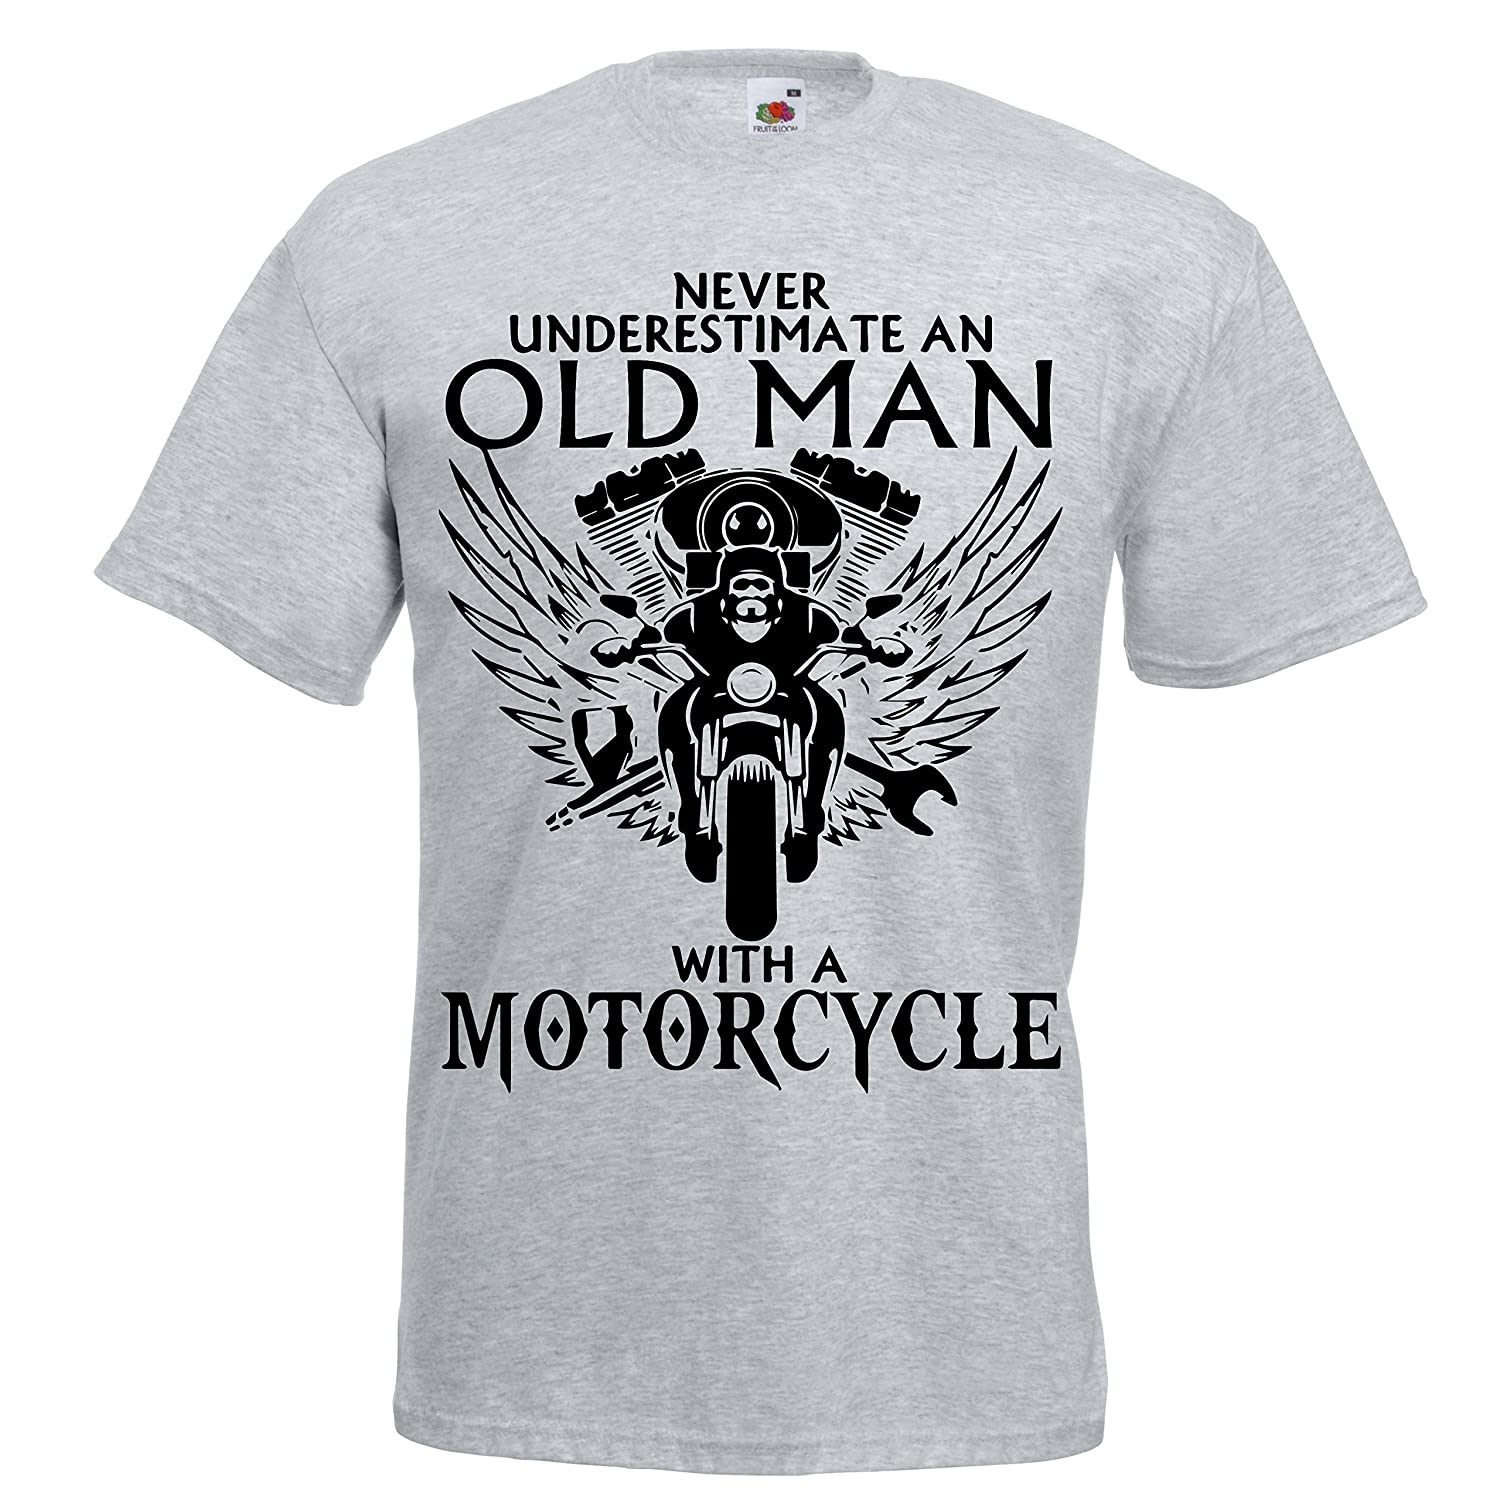 Never Underestimate an Old Man with a Motorcycle T shirt Biker on